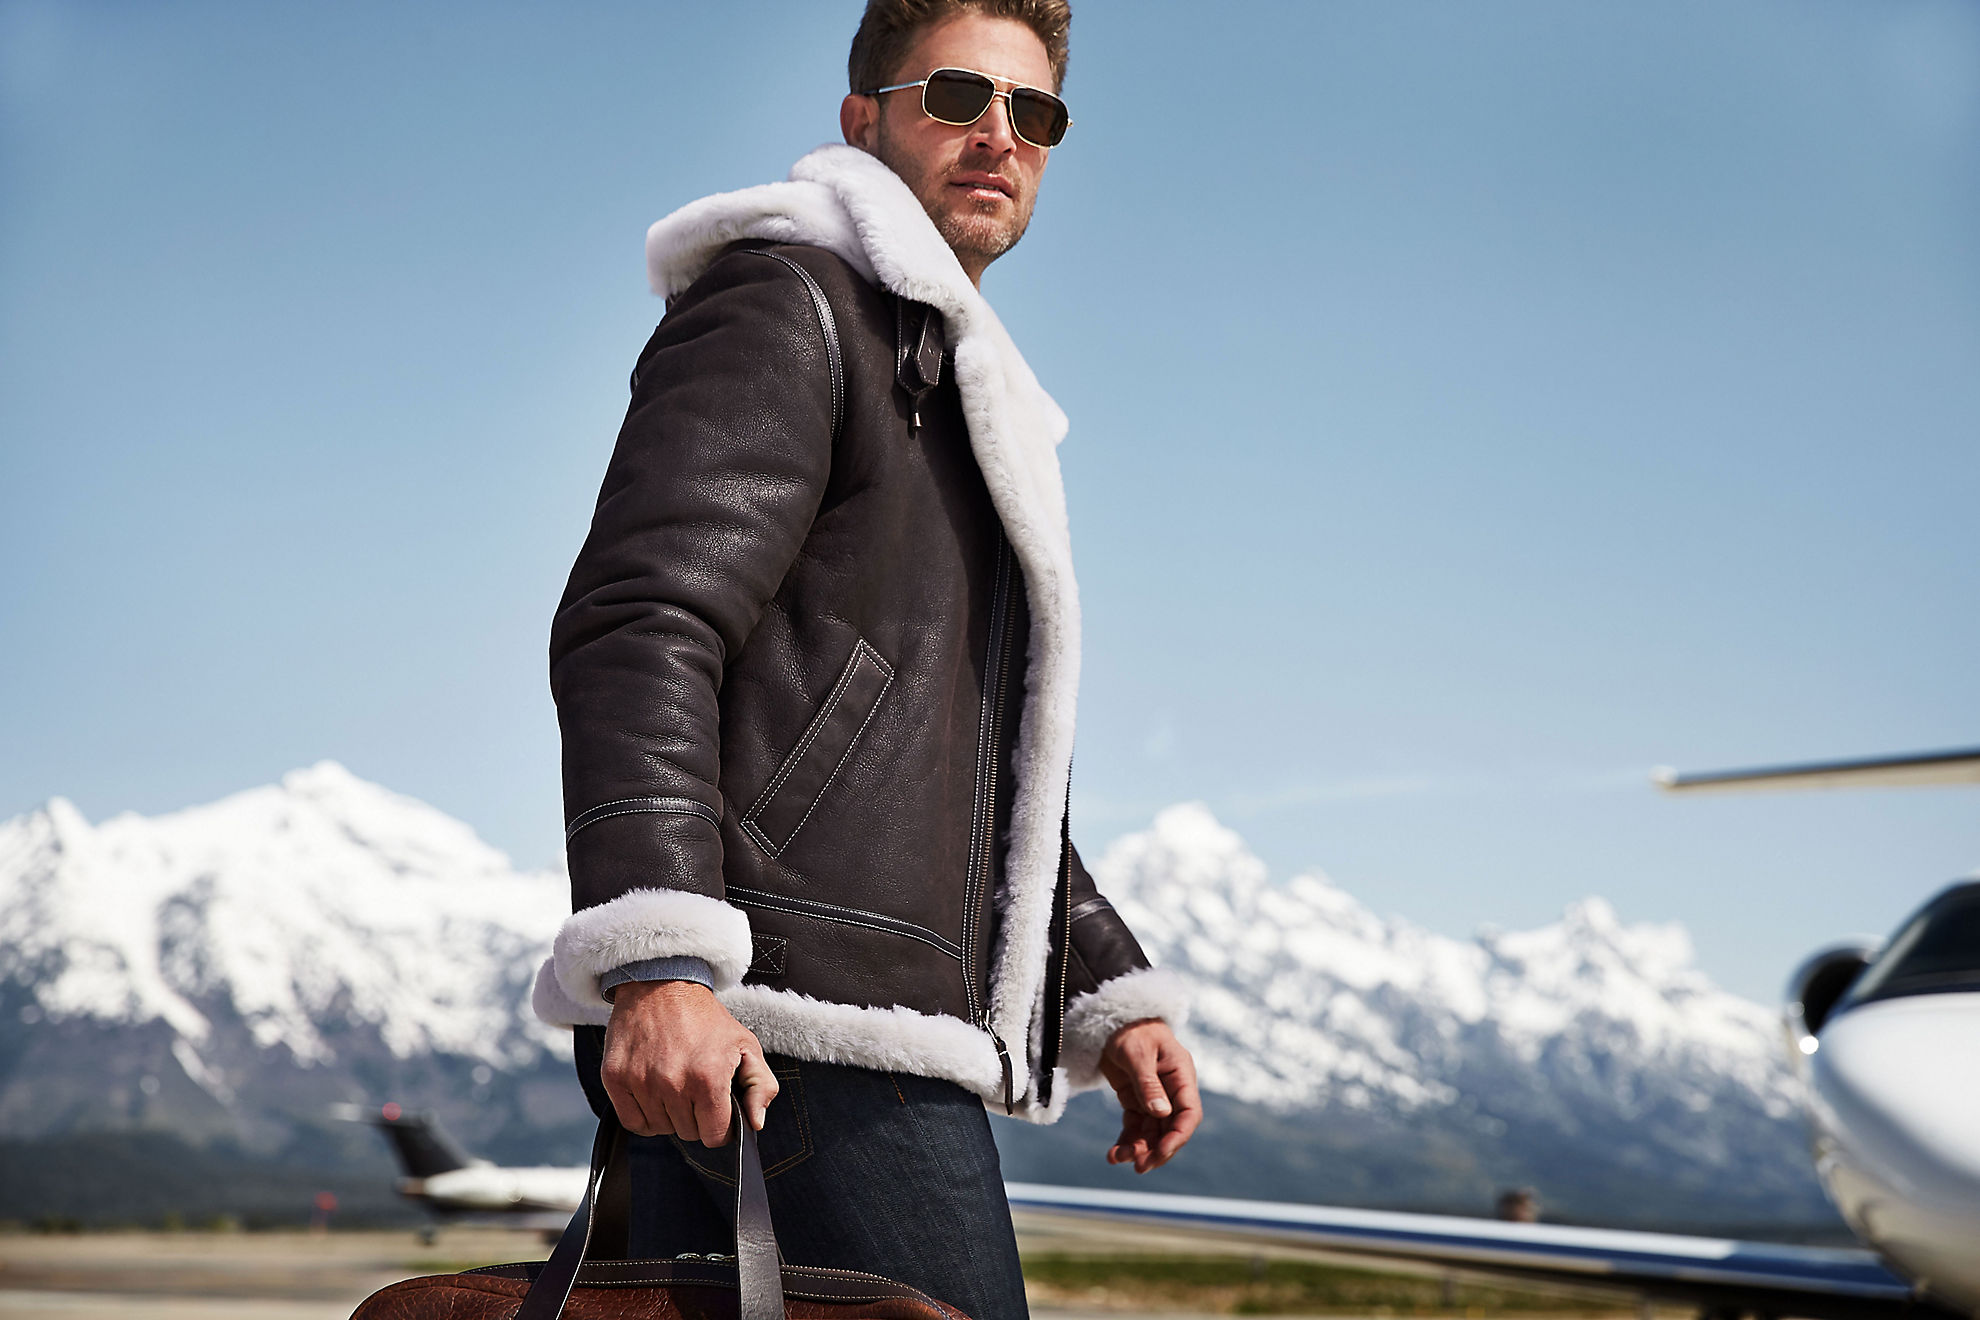 Classic Sheepskin B-3 Bomber Jacket with Detachable Hood - Tall (38LT - 56LT)